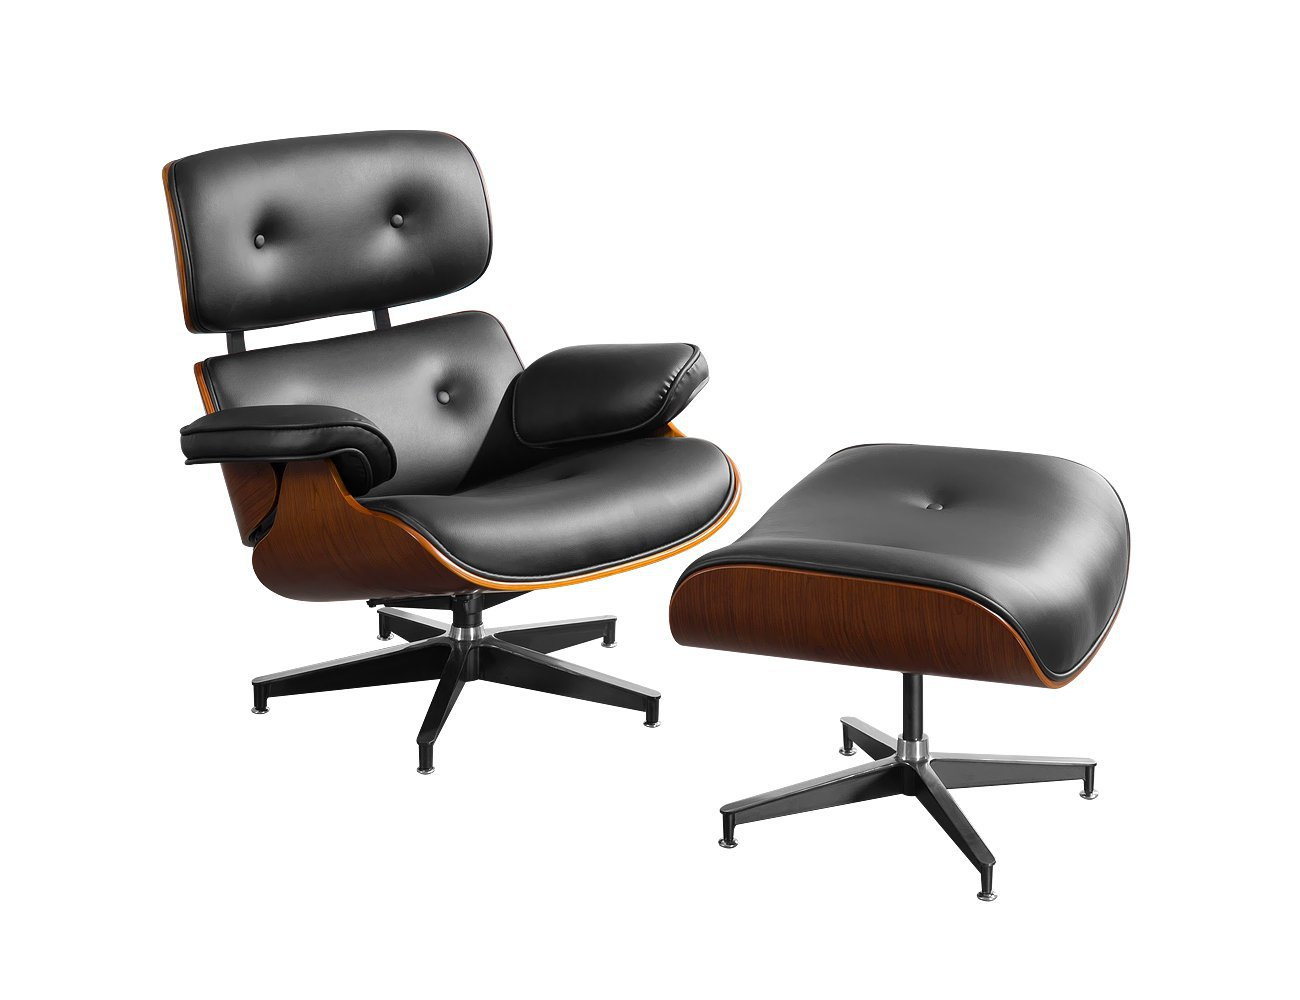 Replica Eames Chair with Ottoman - Black/Walnut